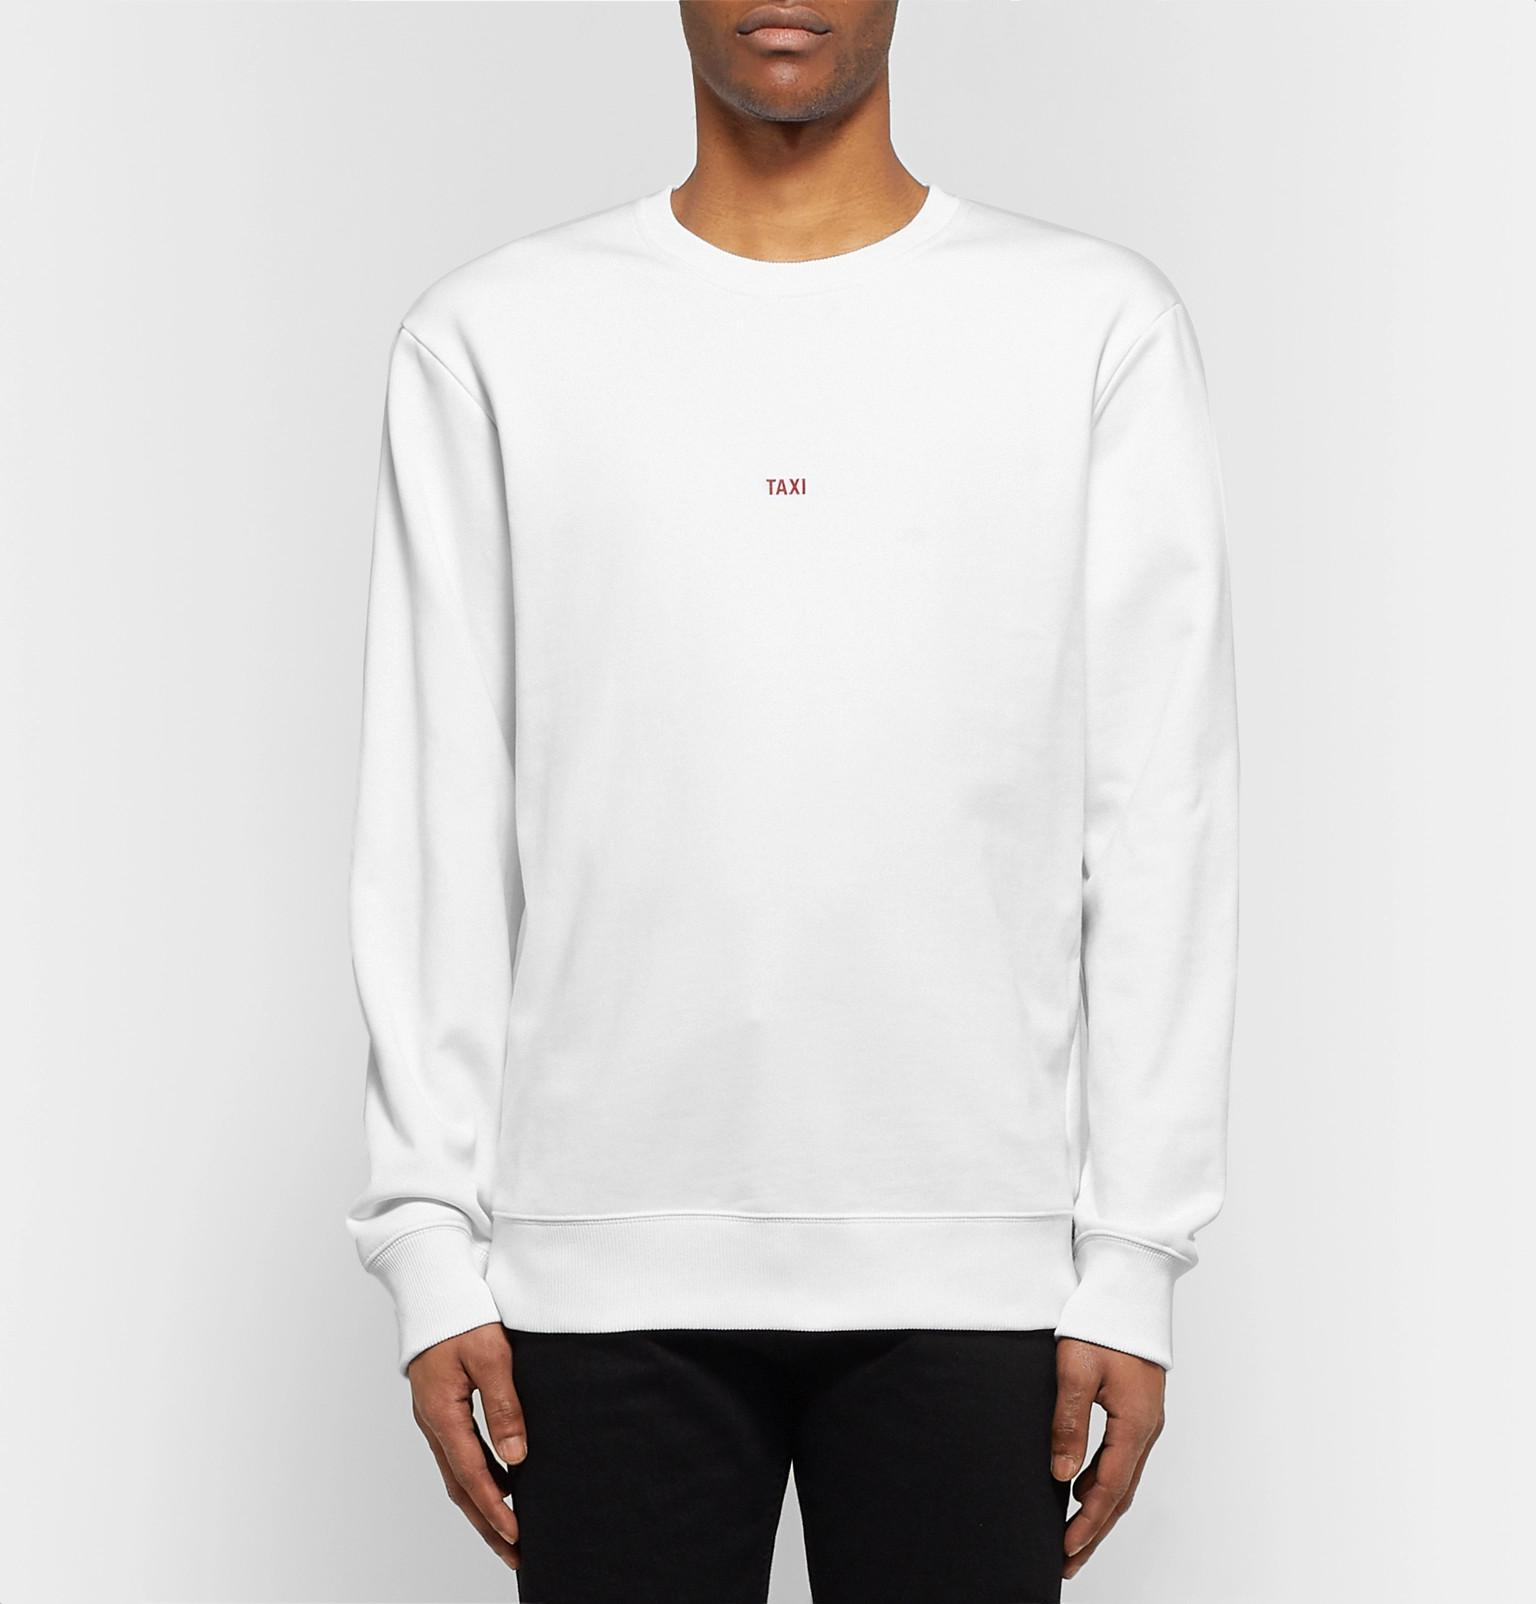 Logo Lang Sweatshirt Jersey Cotton Fullscreen Helmut Loopback For View Paris White Taxi Print Men dIxxT4qw